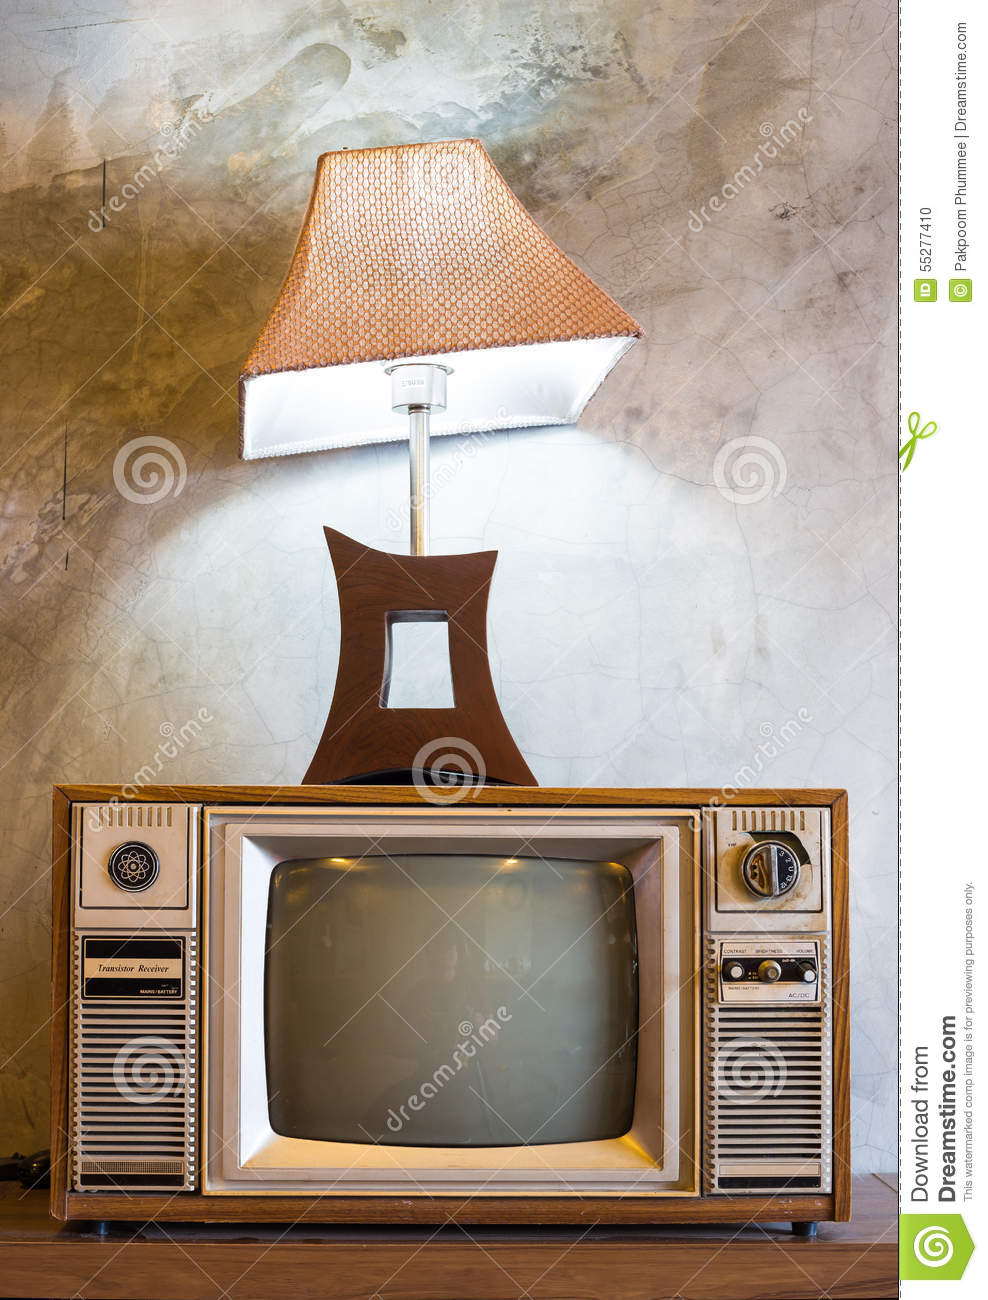 Retro Tv With Wooden Case And Lantern In Room Vintage Wallpaper